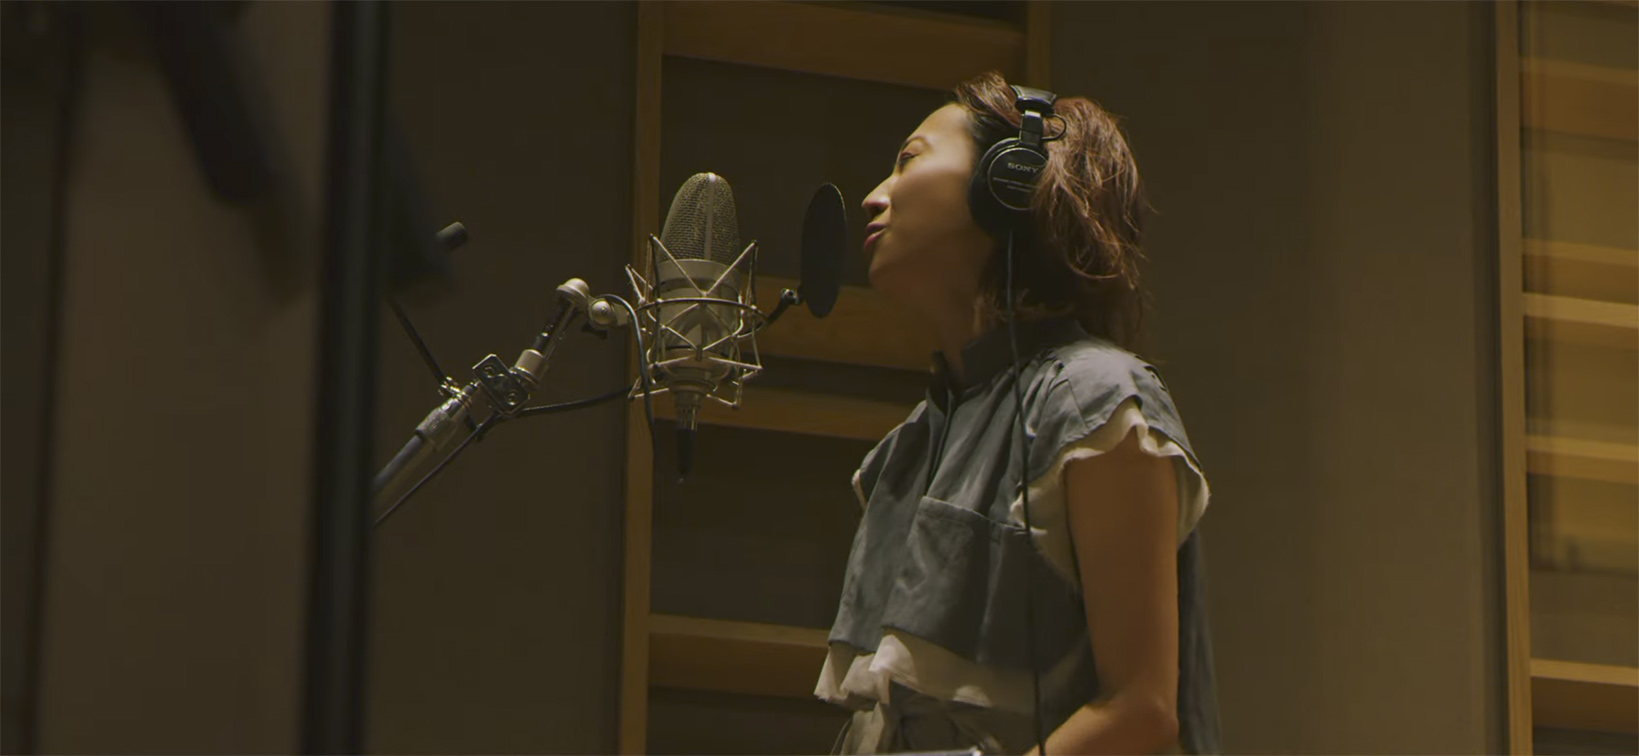 McCann Health Japan launches specialized music playlist for Janssen Pharmaceutical changing 6 minutes of despair into 6 minutes of positivity